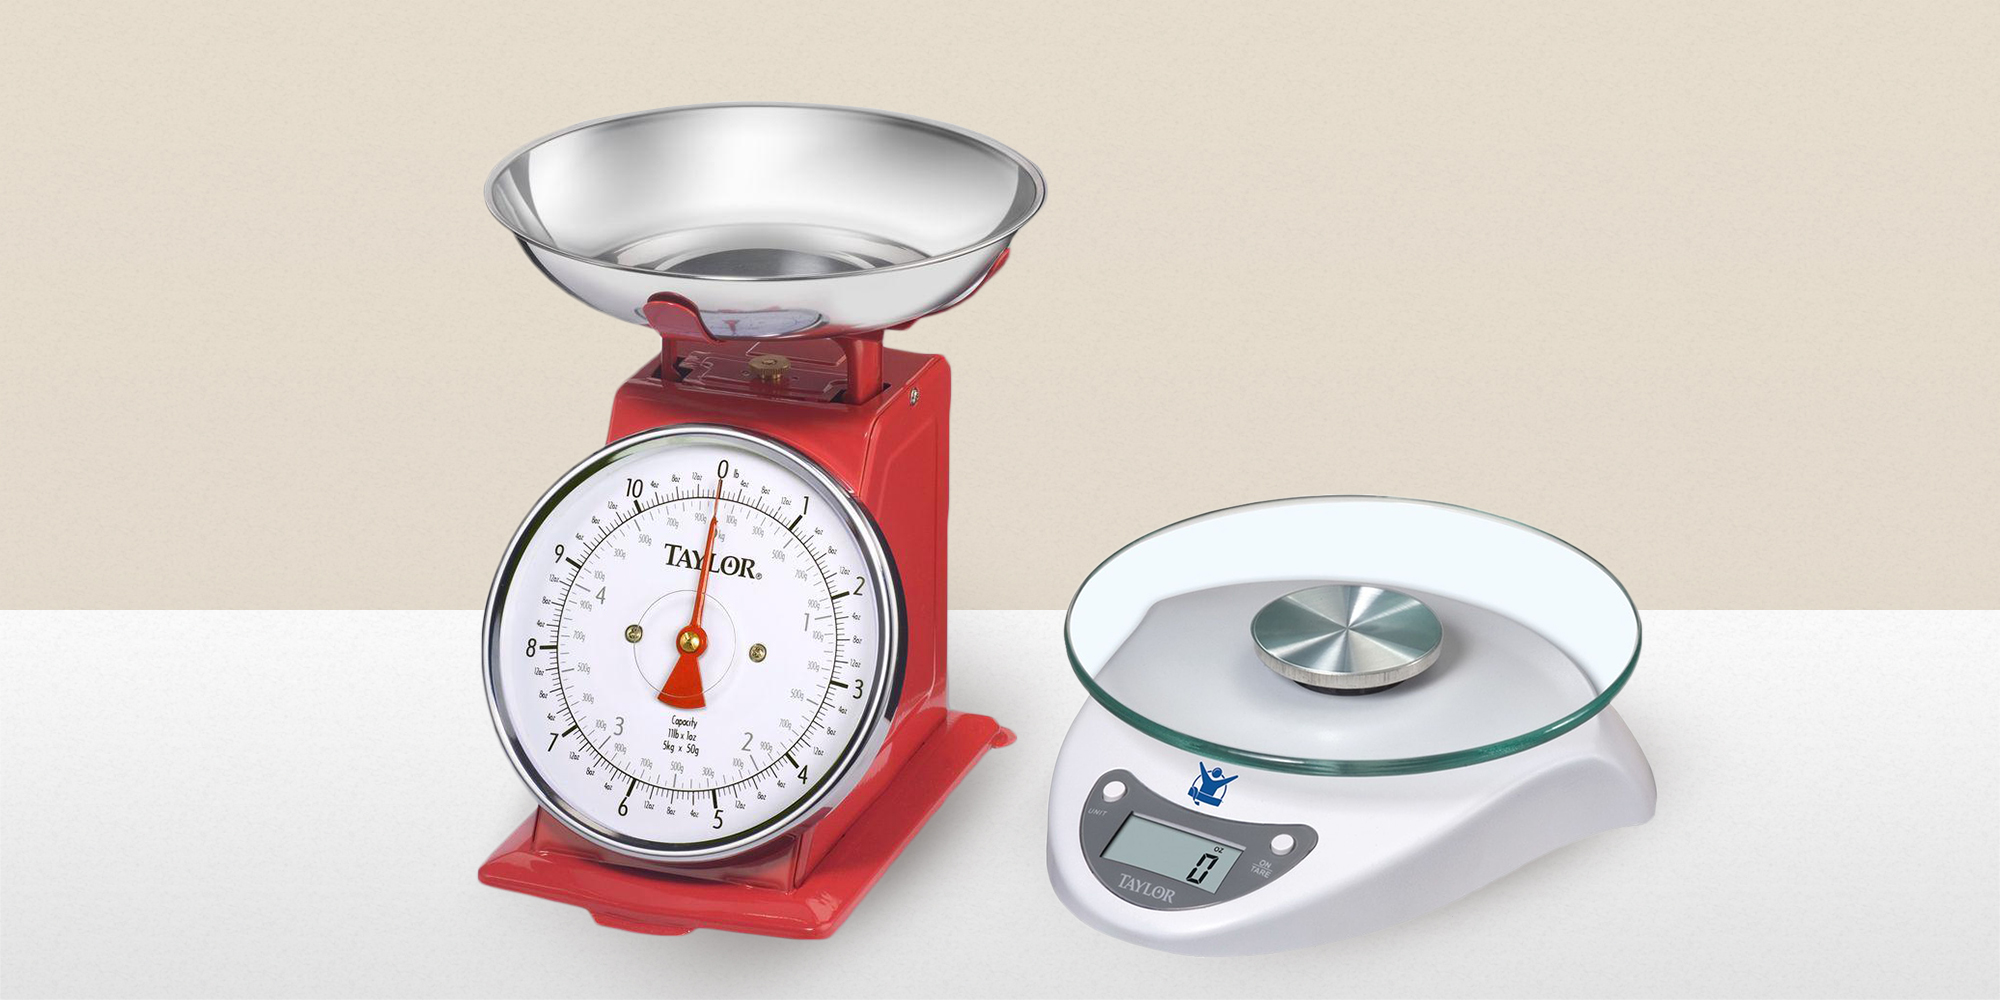 9 Best Kitchen Scales in 2016 Reviews of Digital Kitchen Food Scales